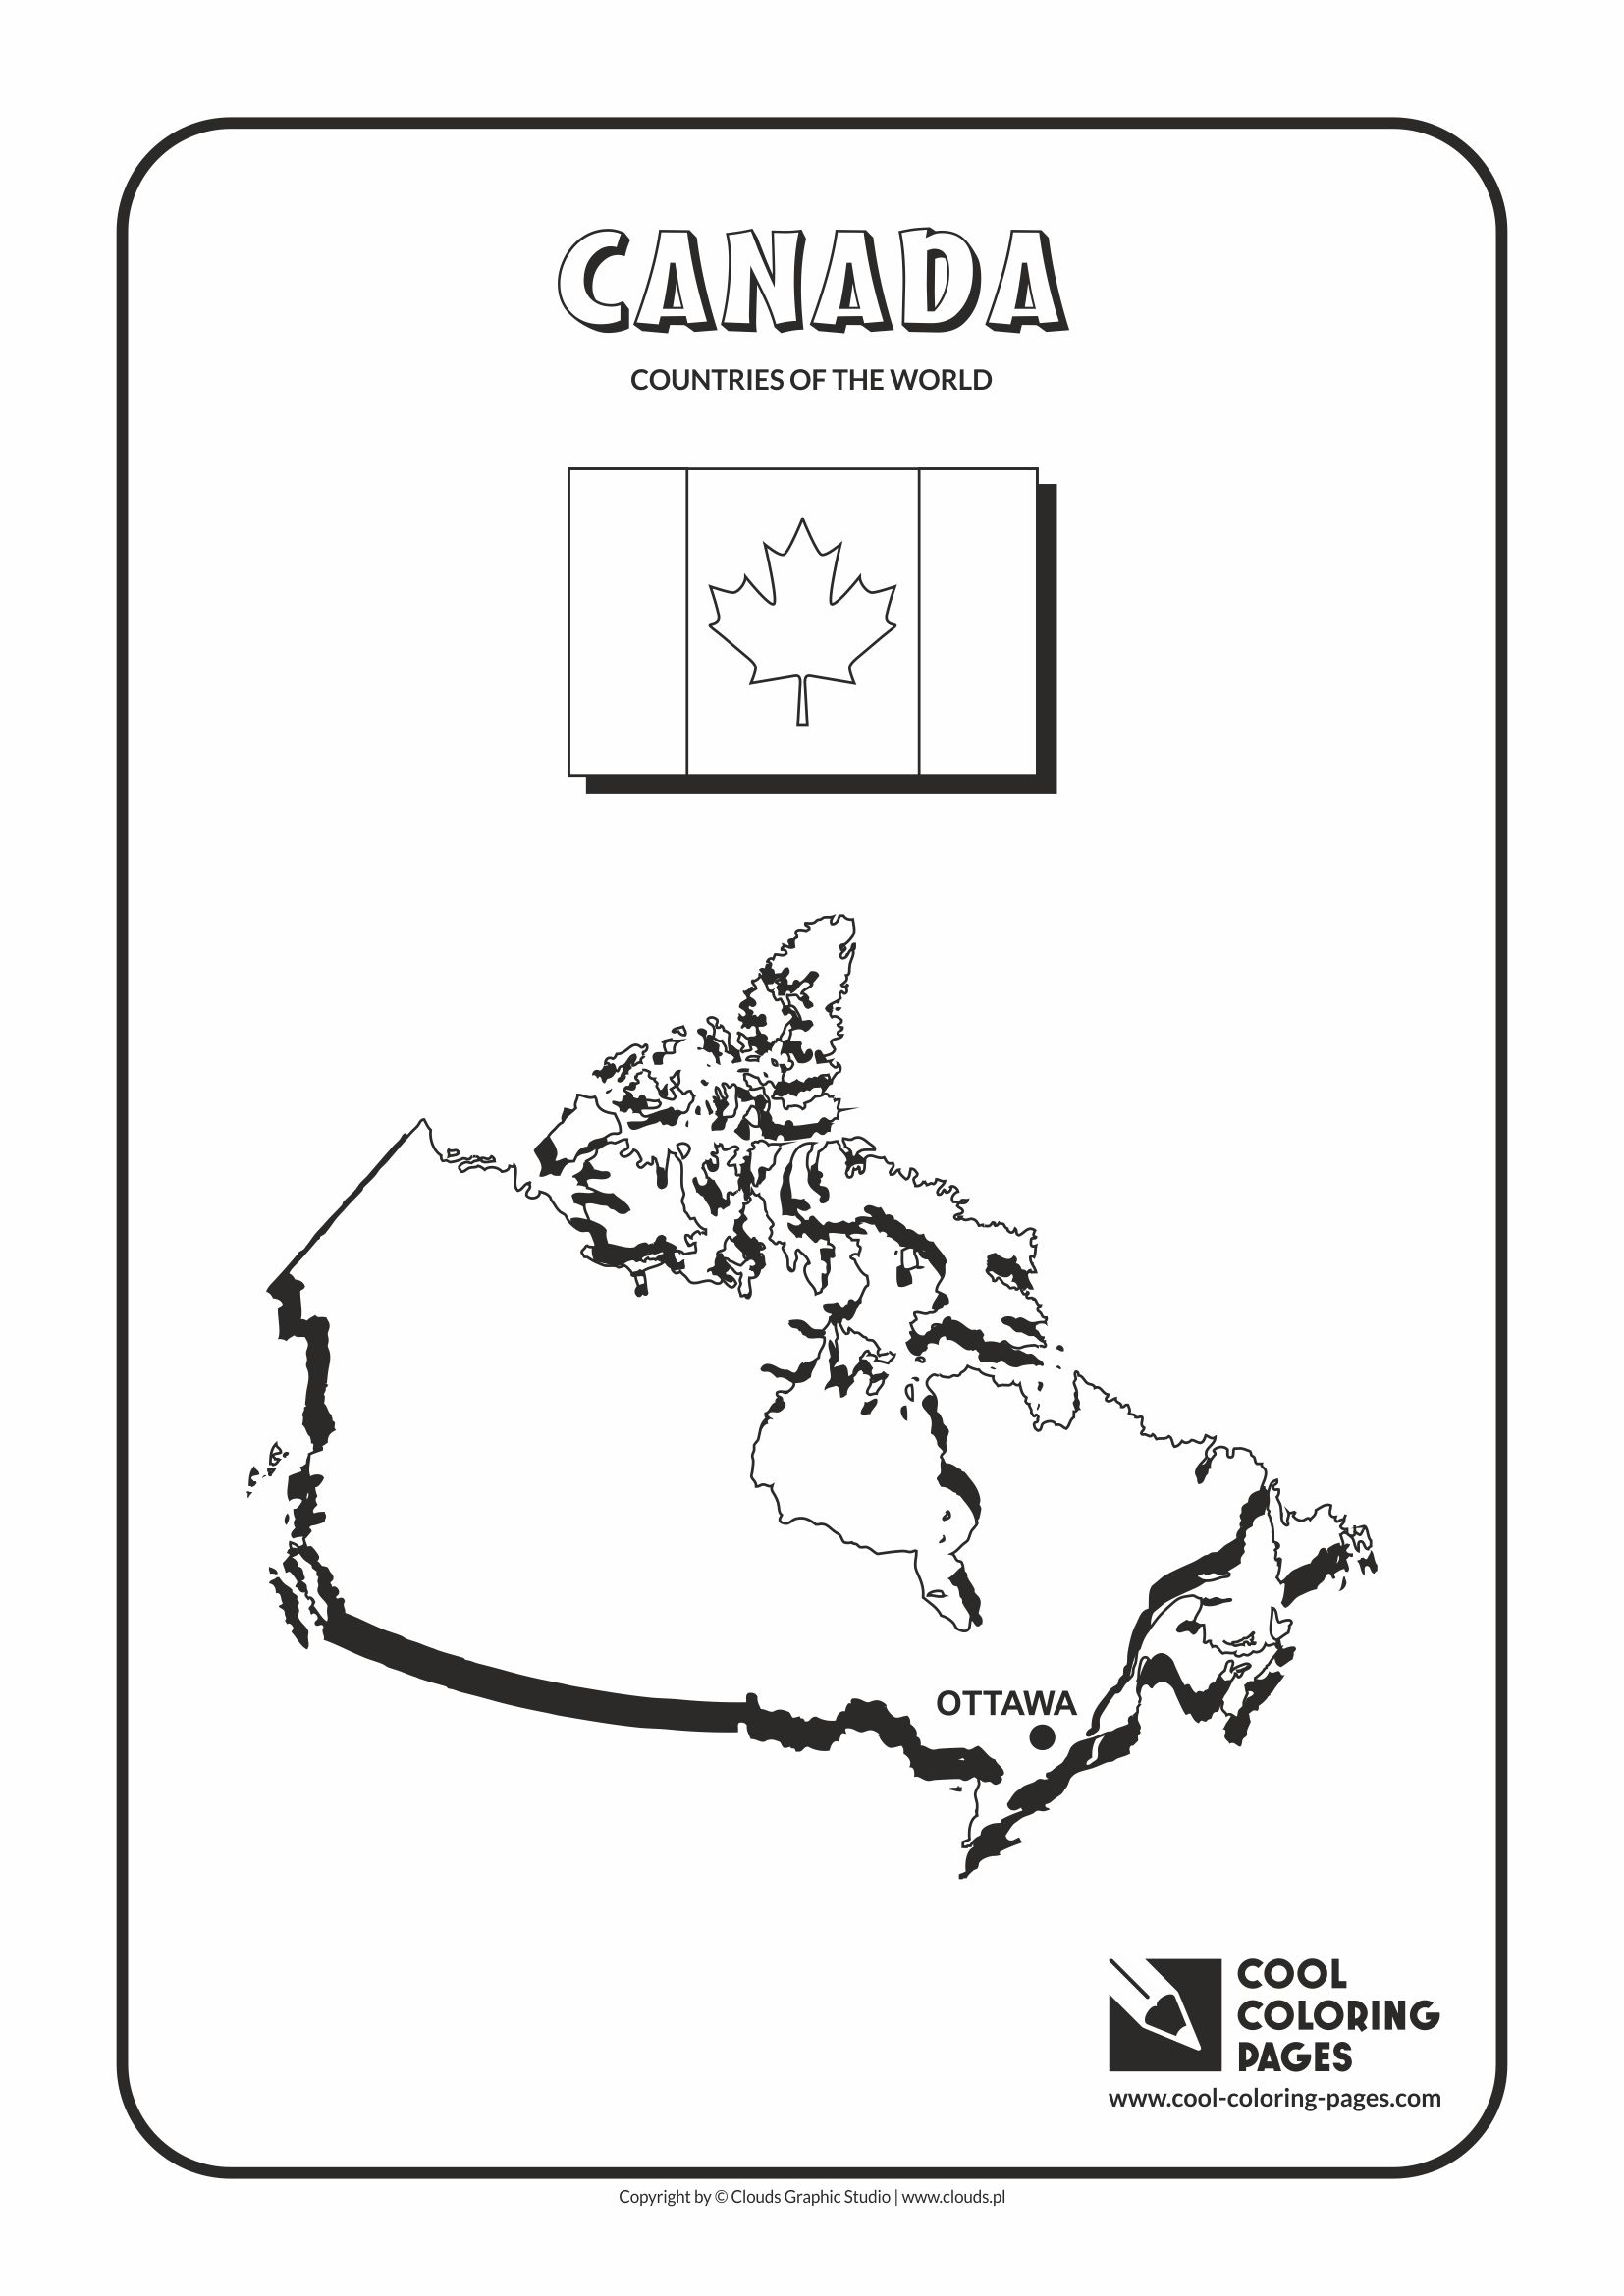 Cool Coloring Pages Countries Of The World Cool Coloring